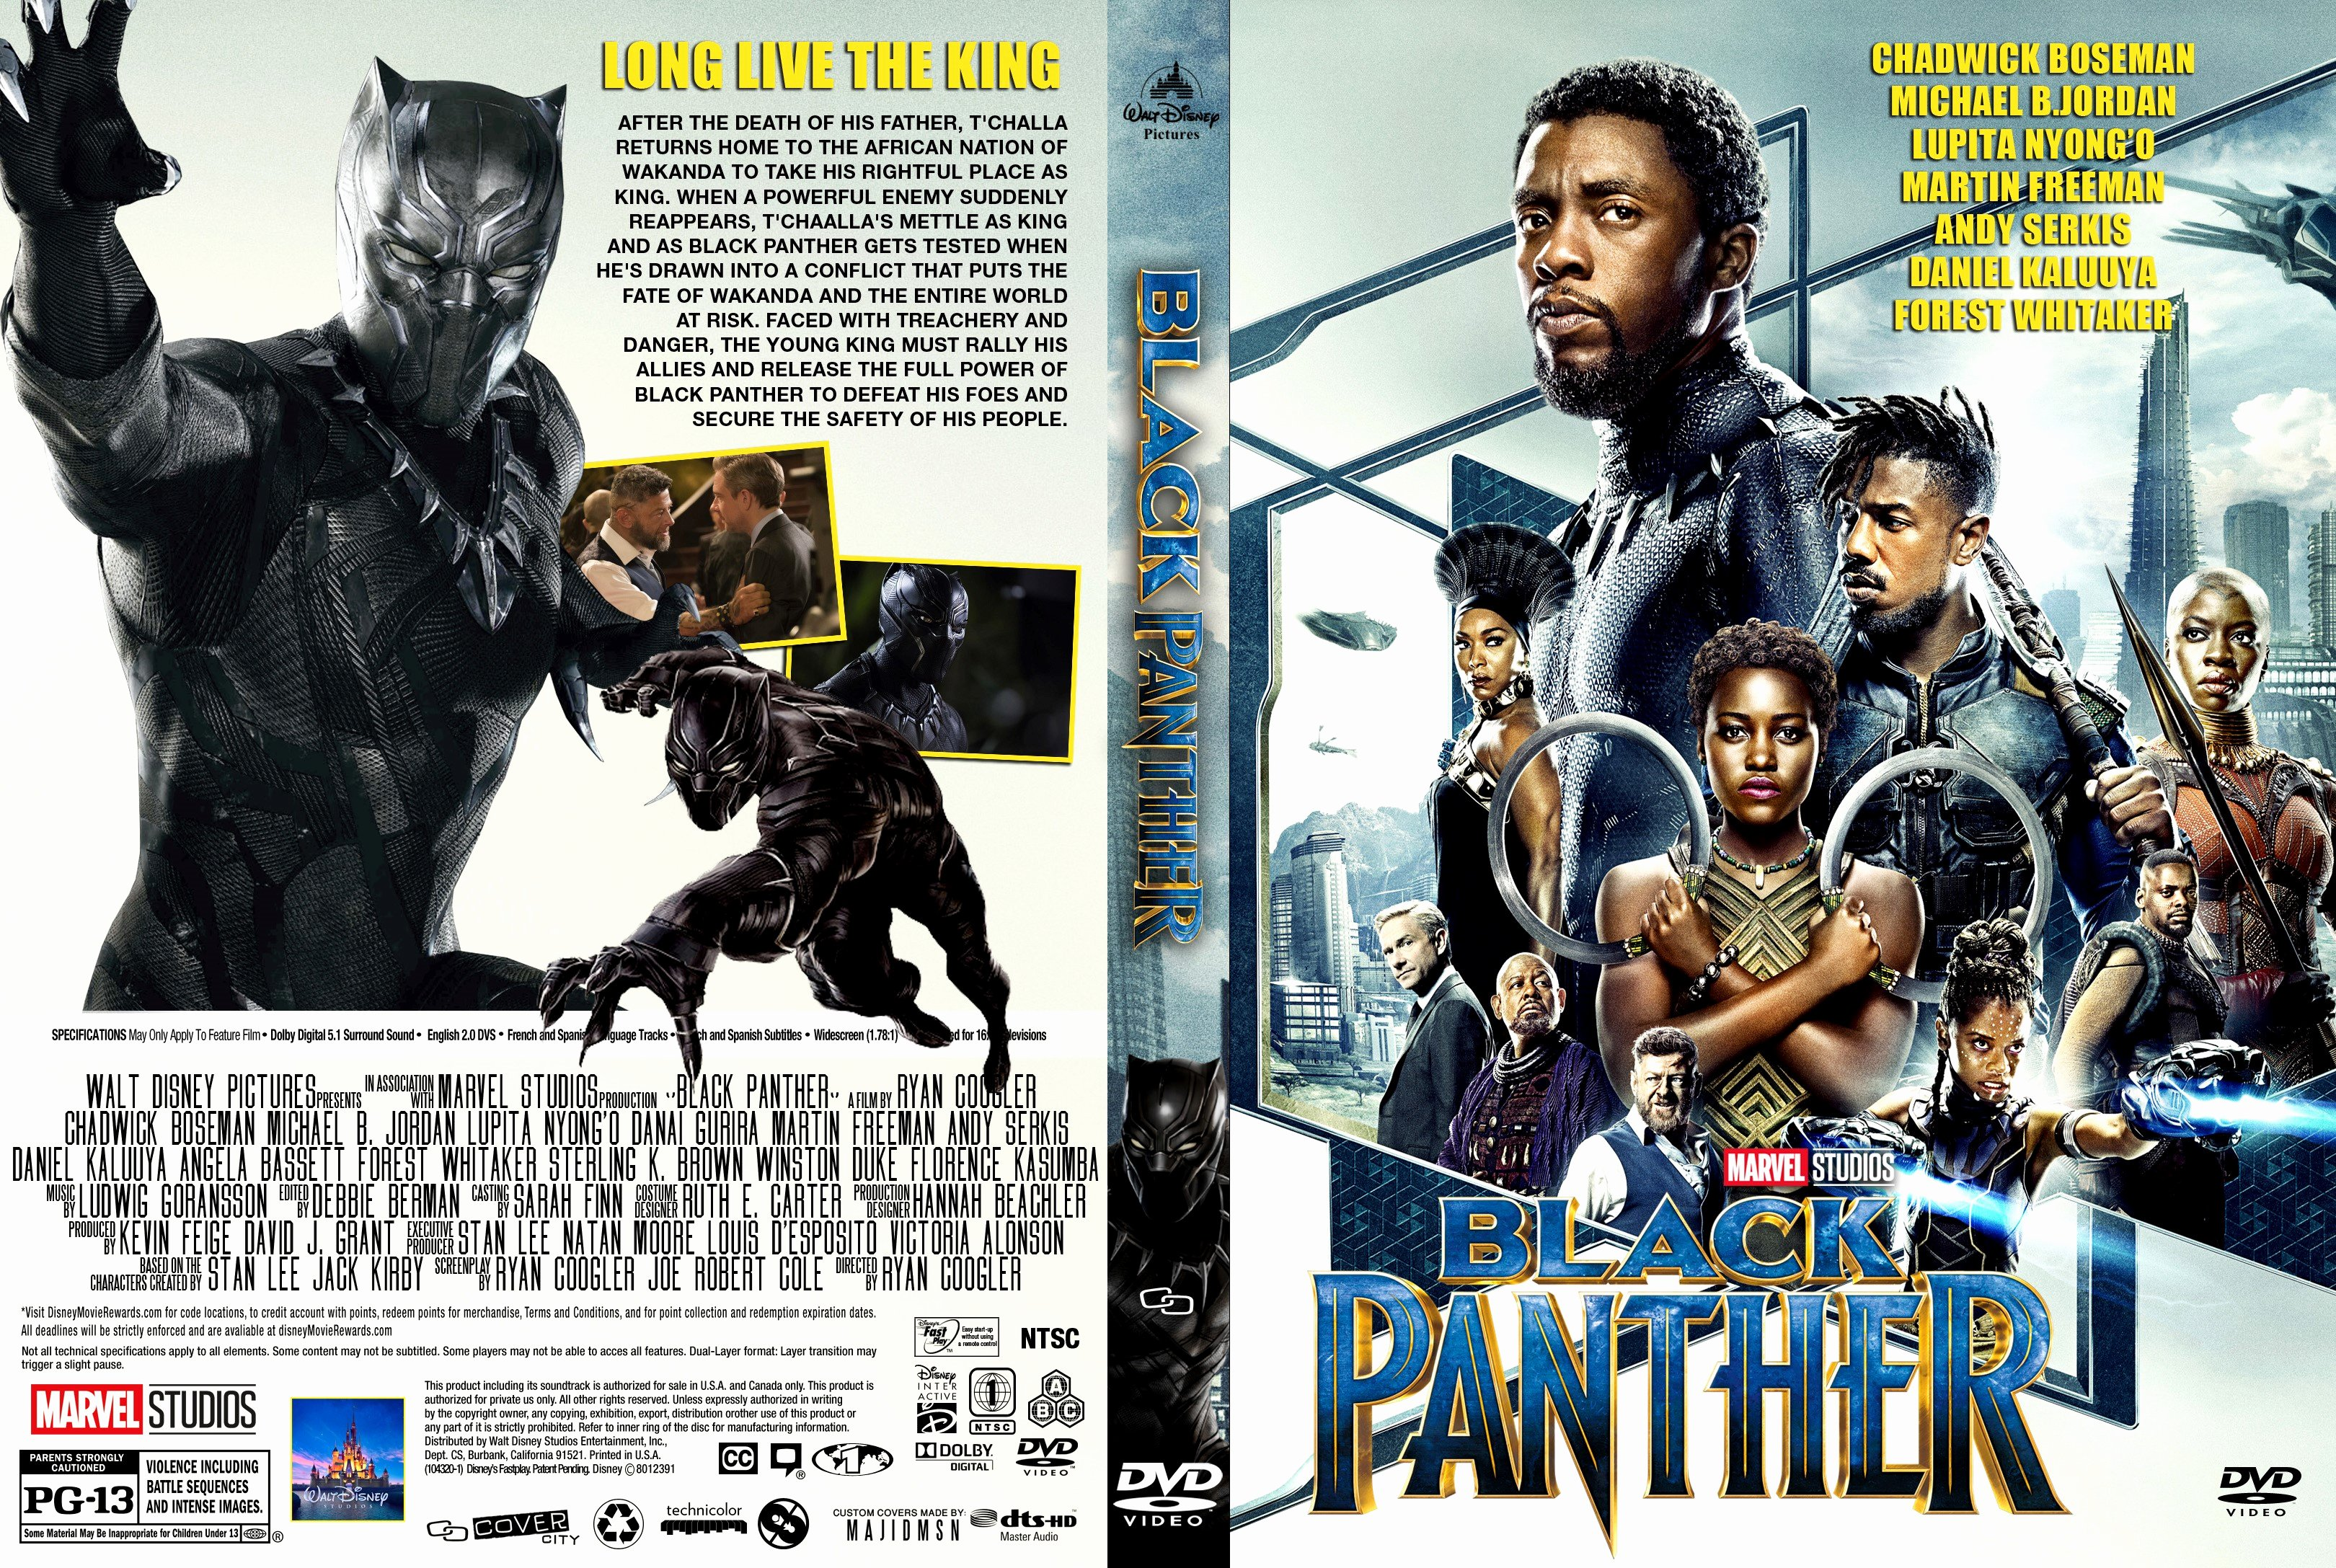 Free Dvd Cover Art Best Of Black Panther Dvd Cover Cover Addict Free Dvd Bluray